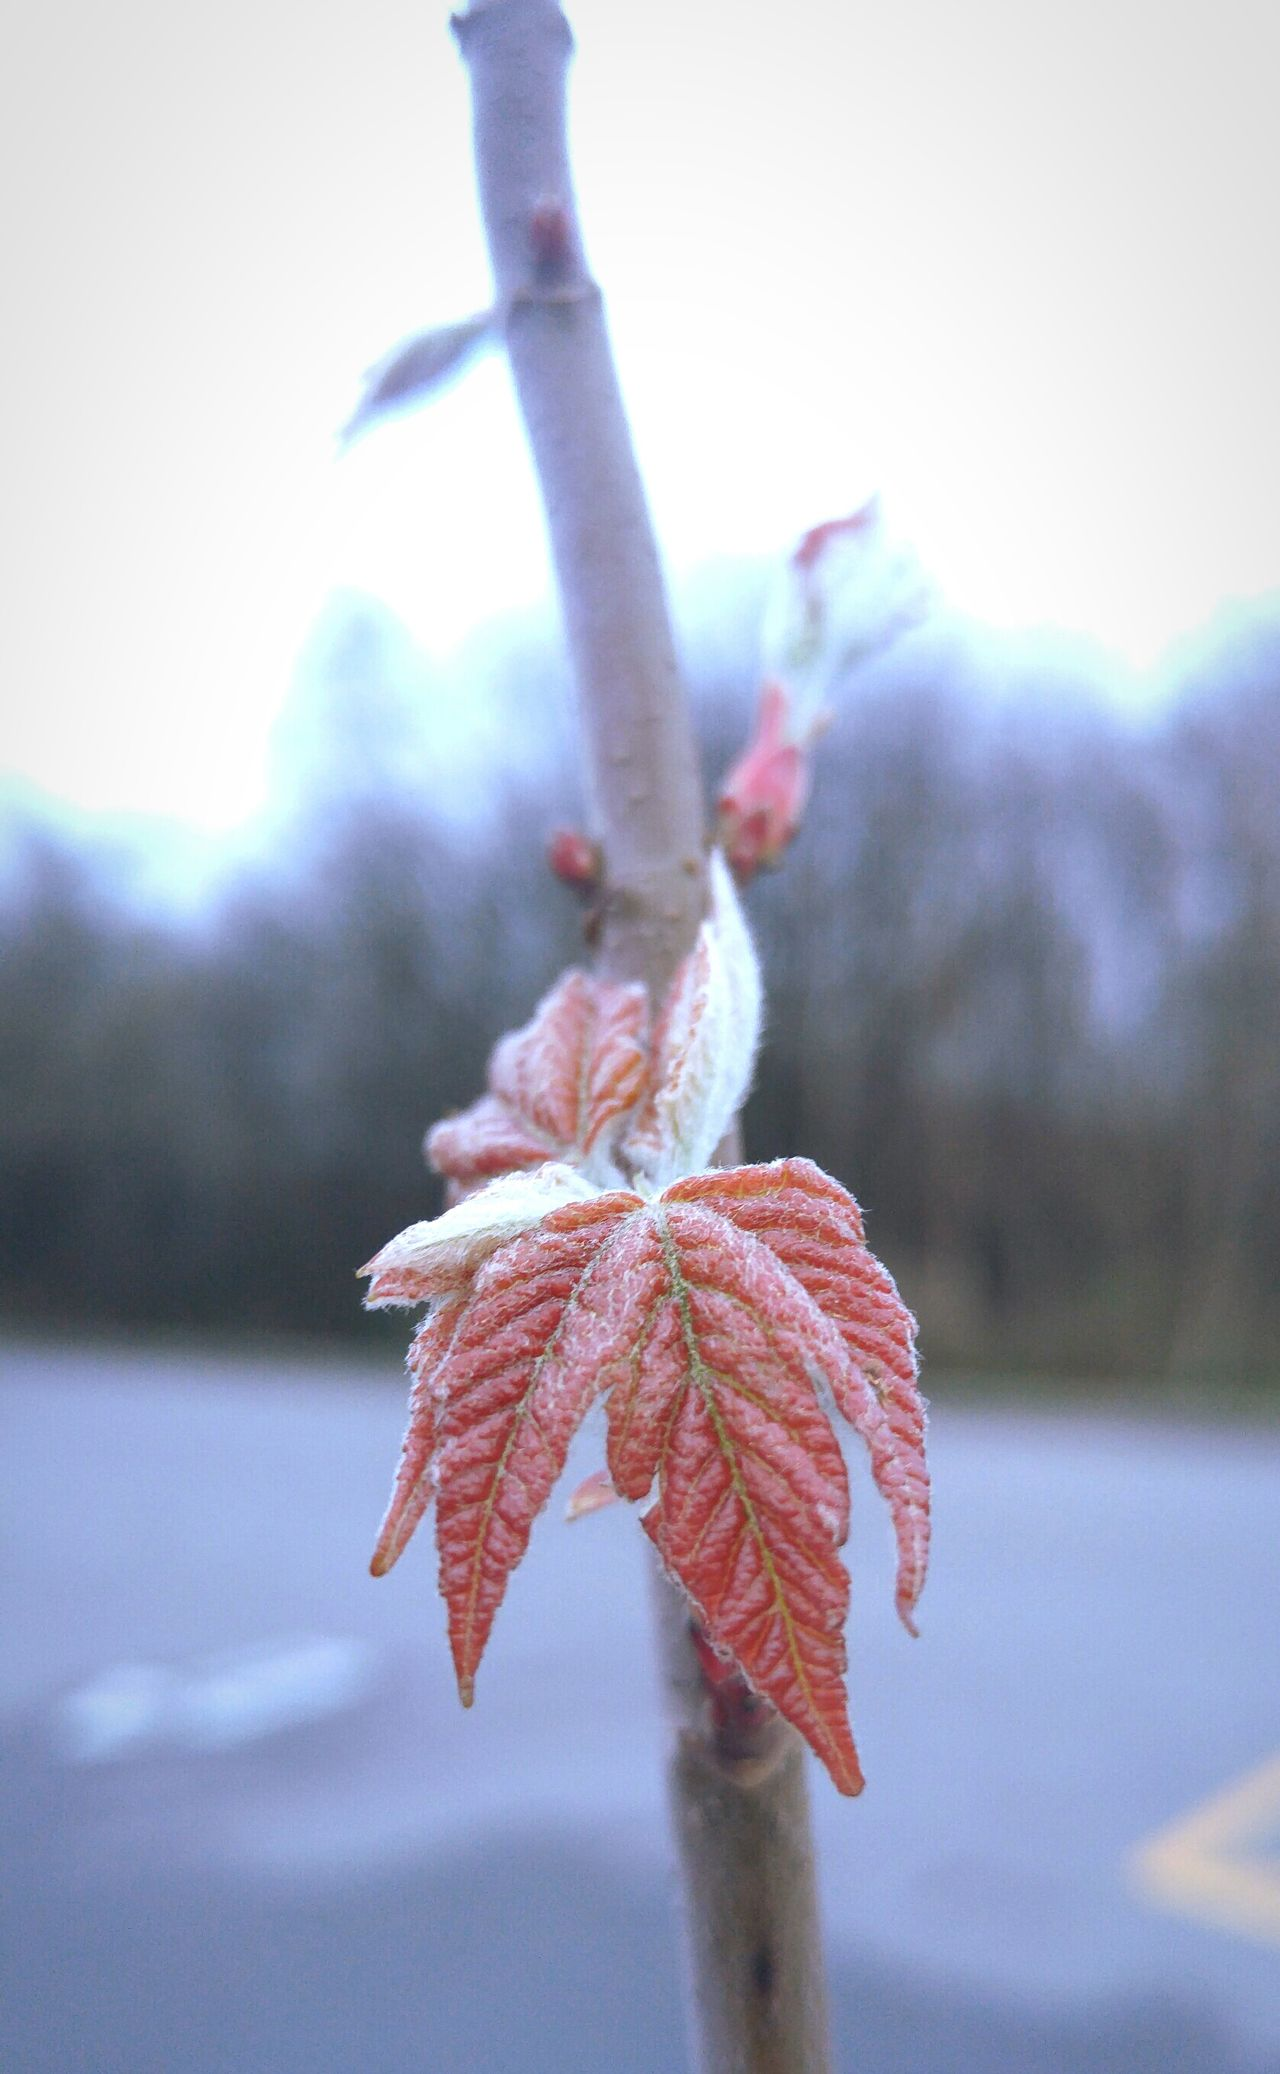 Nature Maple Mapleleaf Tree Maple Tree Outdoors Springtime New Life Fresh Spring Garden Plant Fwjphotos LGG4 Lgg4photography Nature Photography Garden Photography